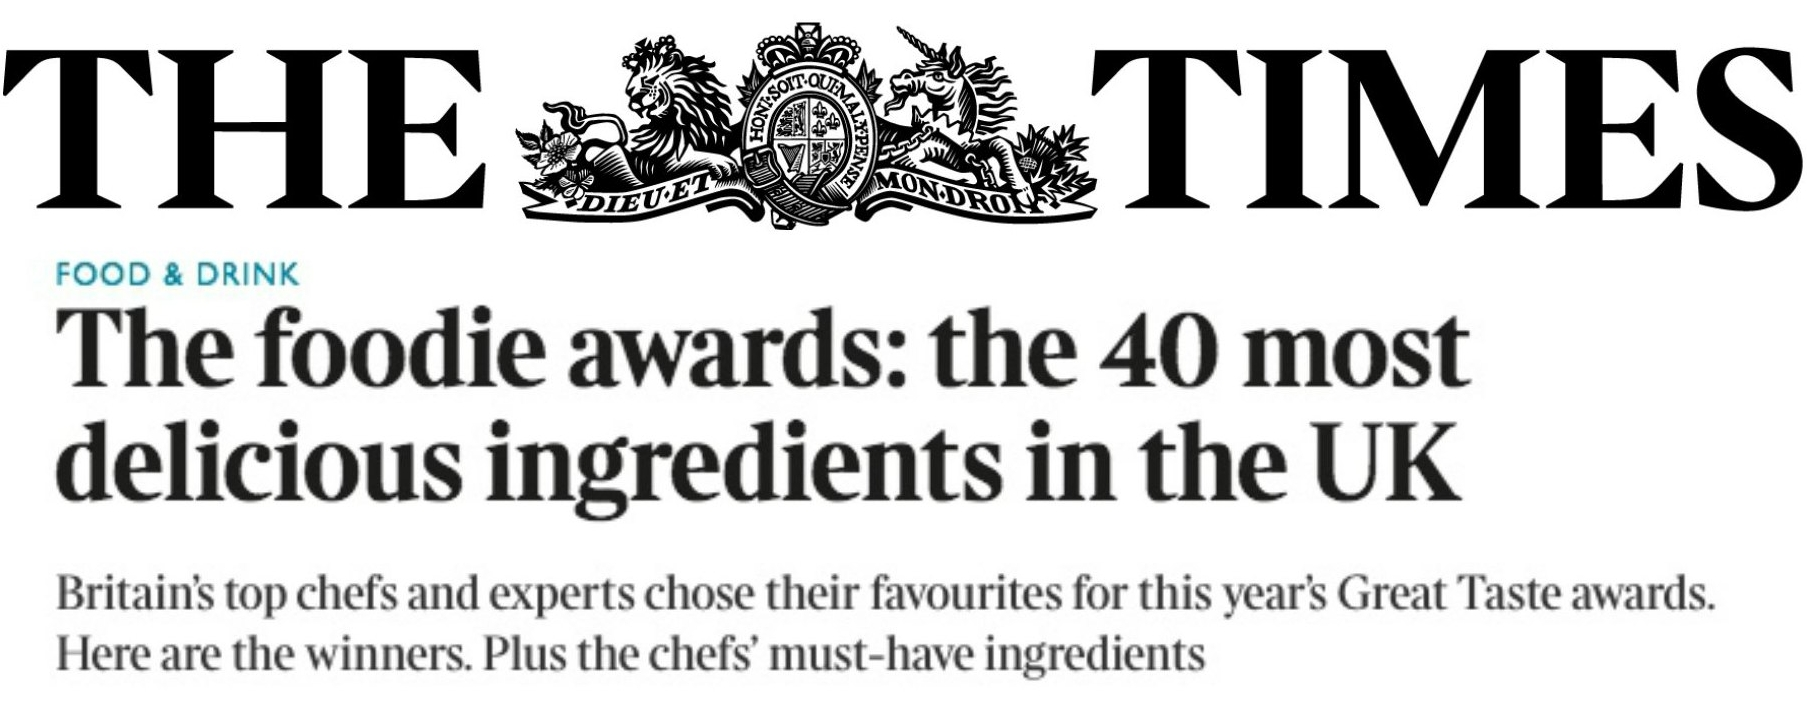 Pistachio Paste made it to this prestigious list.  Read what the editors think about it.